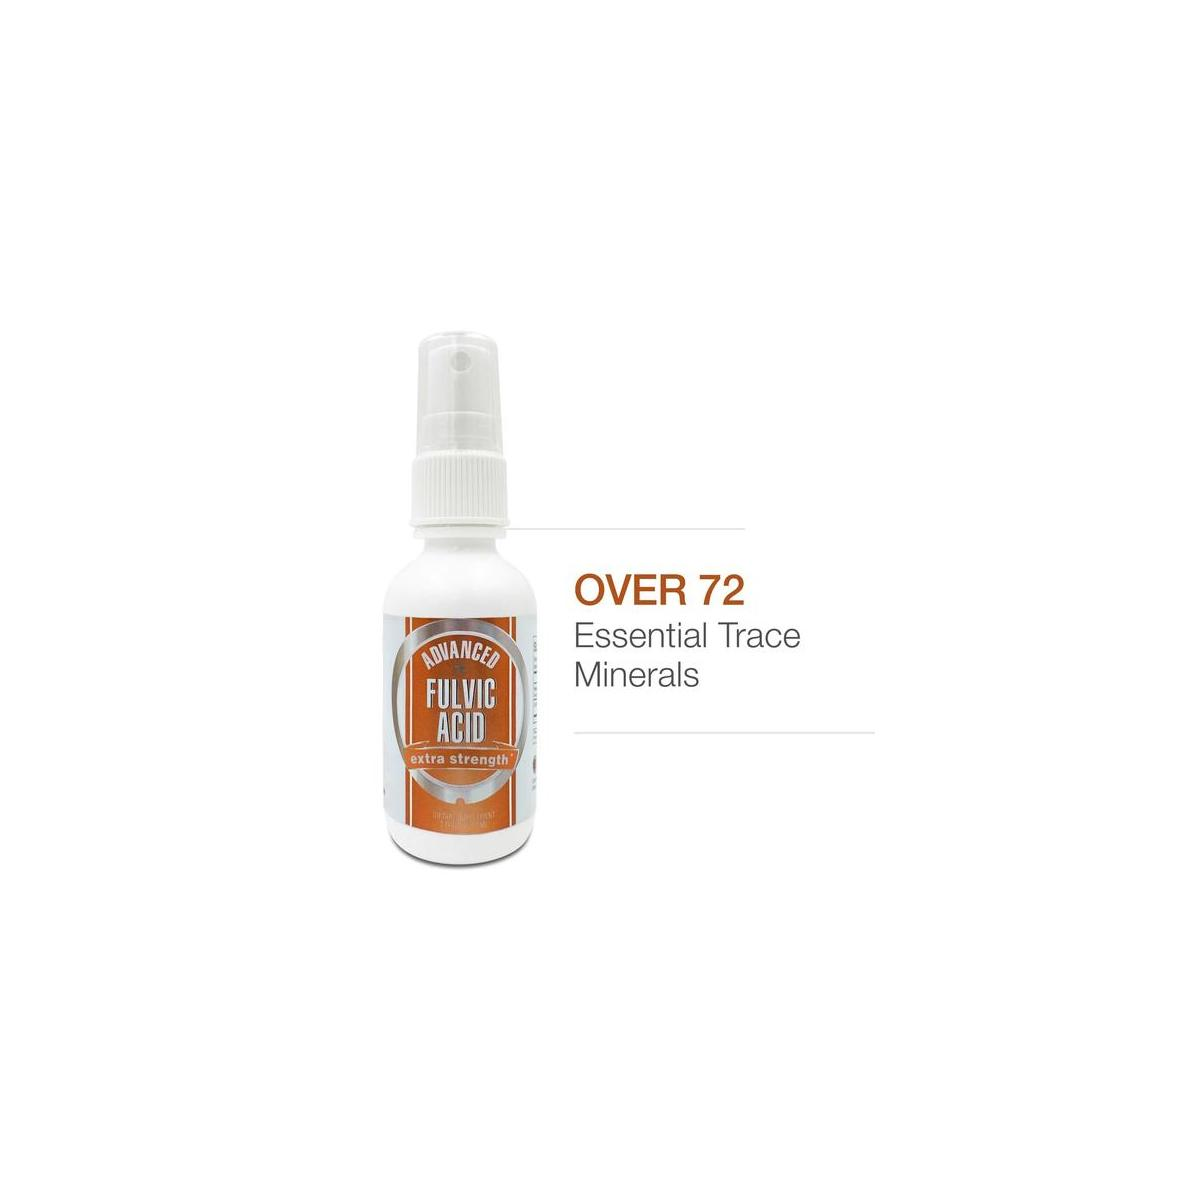 Advanced Fulvic Acid Spray - 72+ Trace Essential Trace Minerals